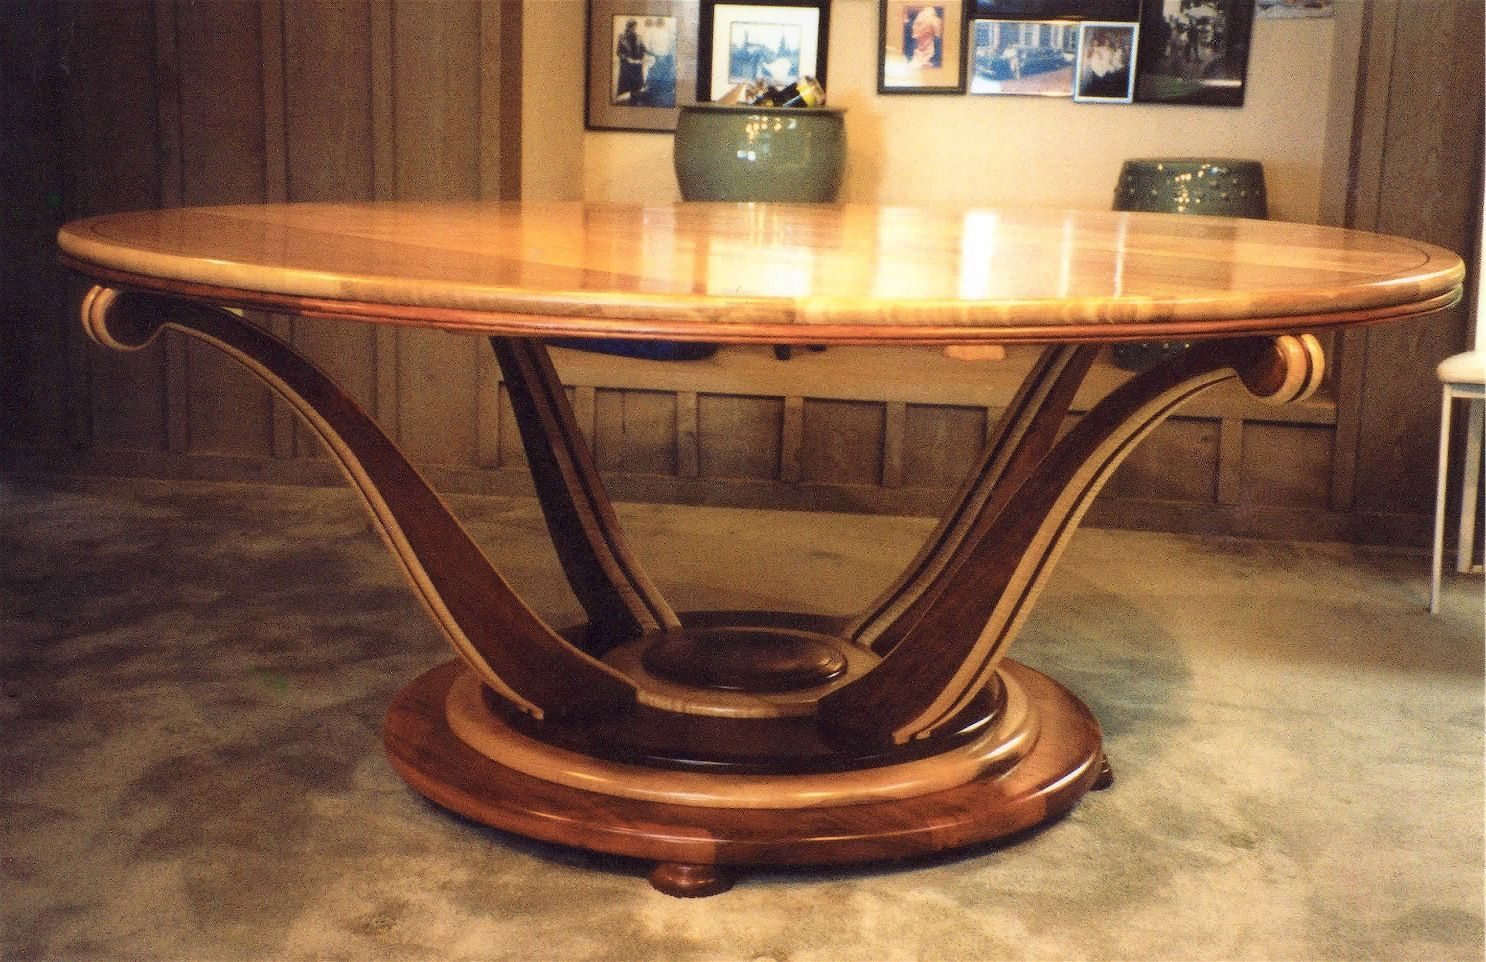 SOLD $1400 vintage antique exotic wood round dining table c 1930